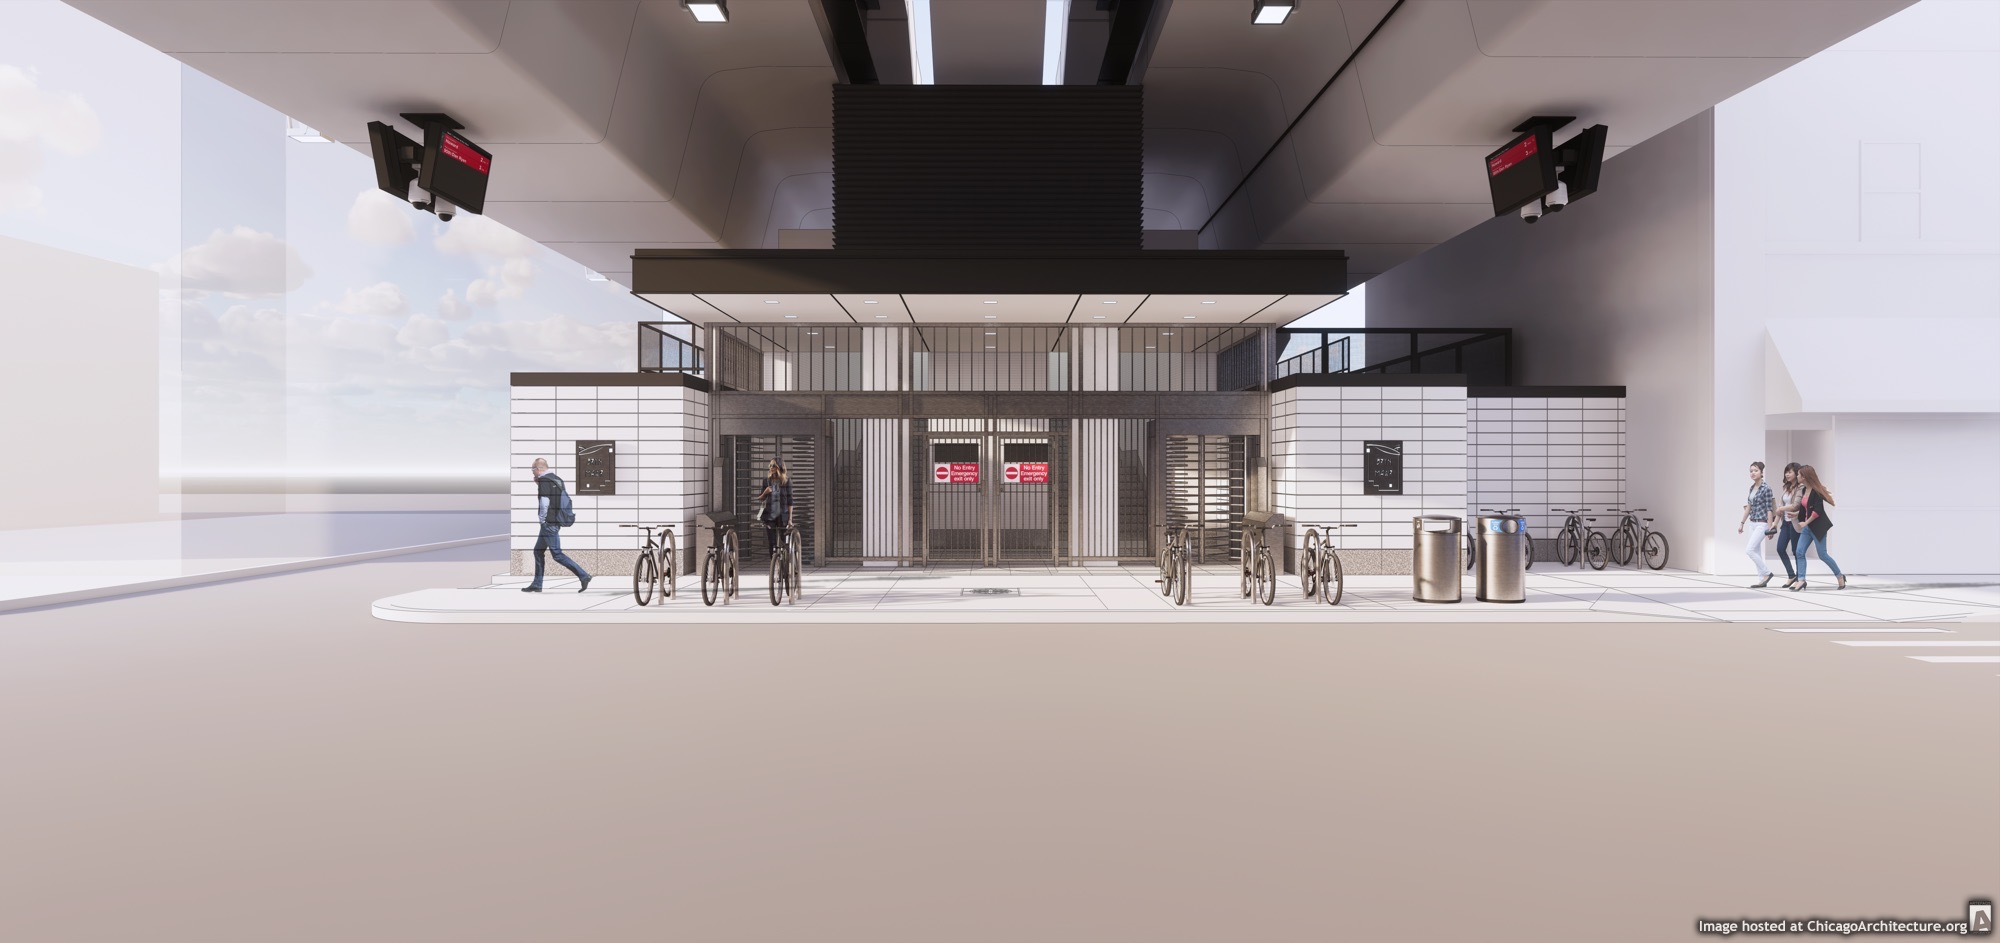 February, 2021 rendering of the CTA Bryn Mawr station. (Courtesy of the City of Chicago)